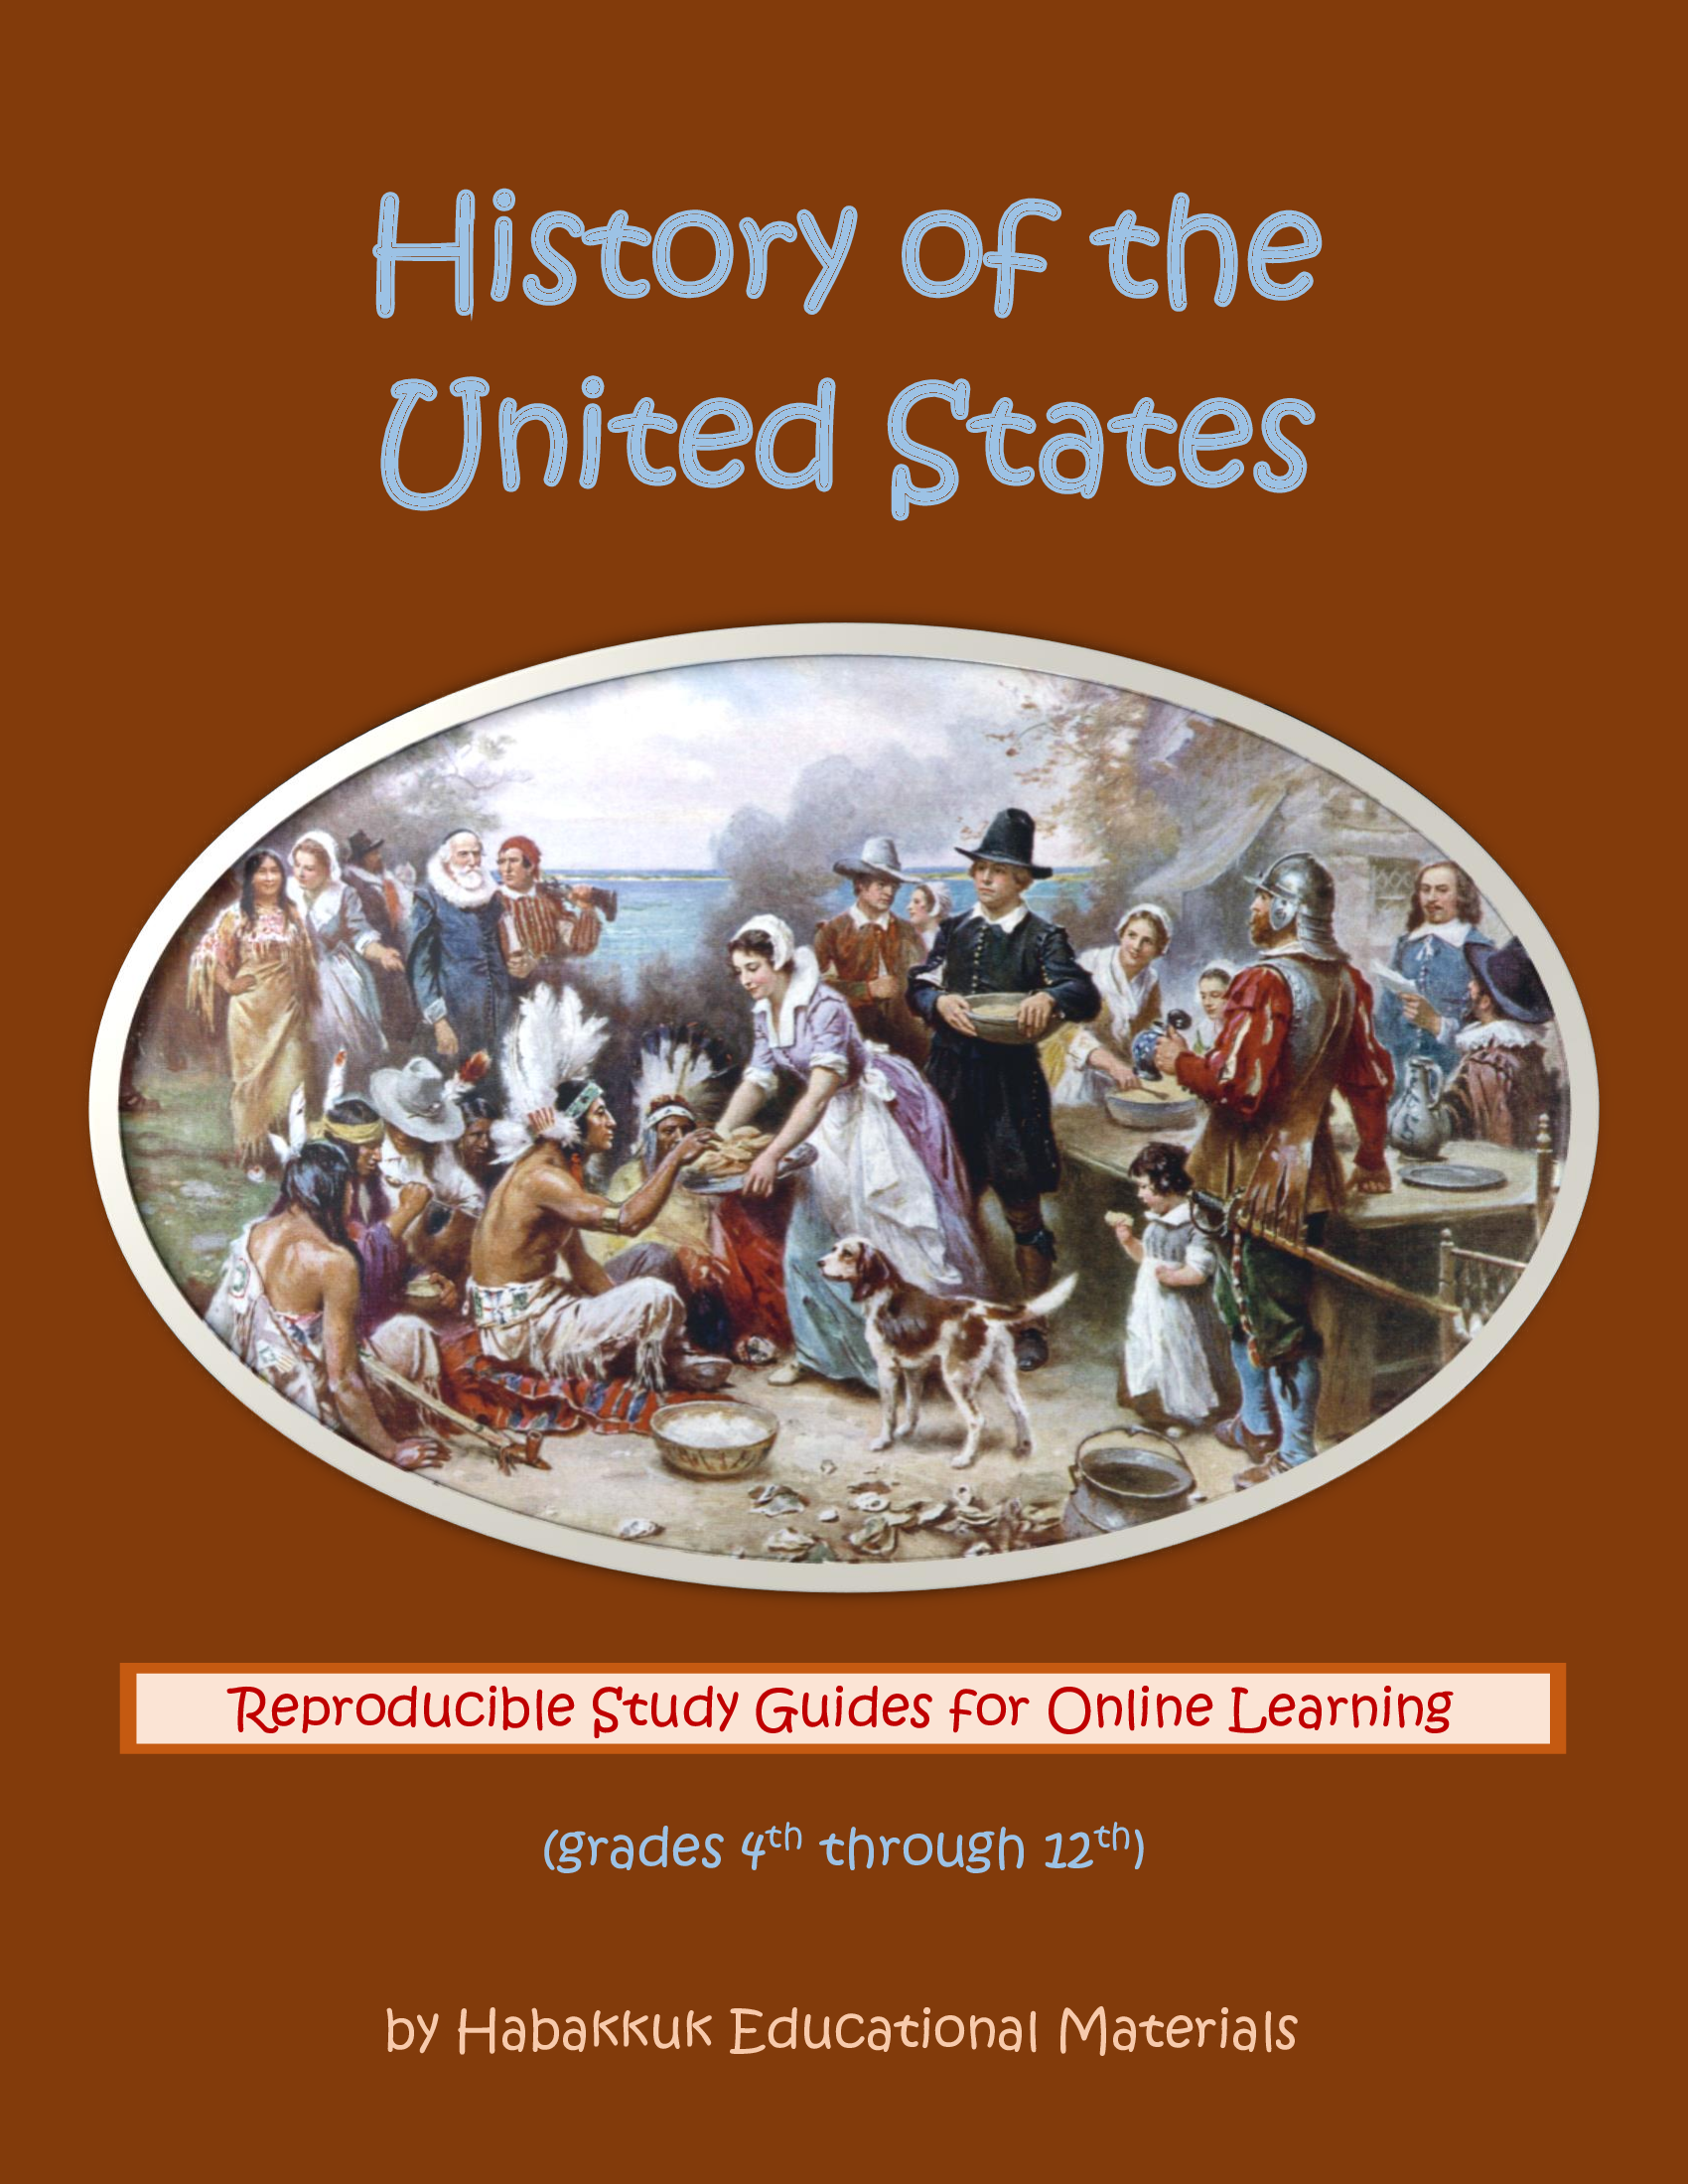 History of the United States (Reproducible Study Guides for Oline Learning), by Habakkuk Educational Materials